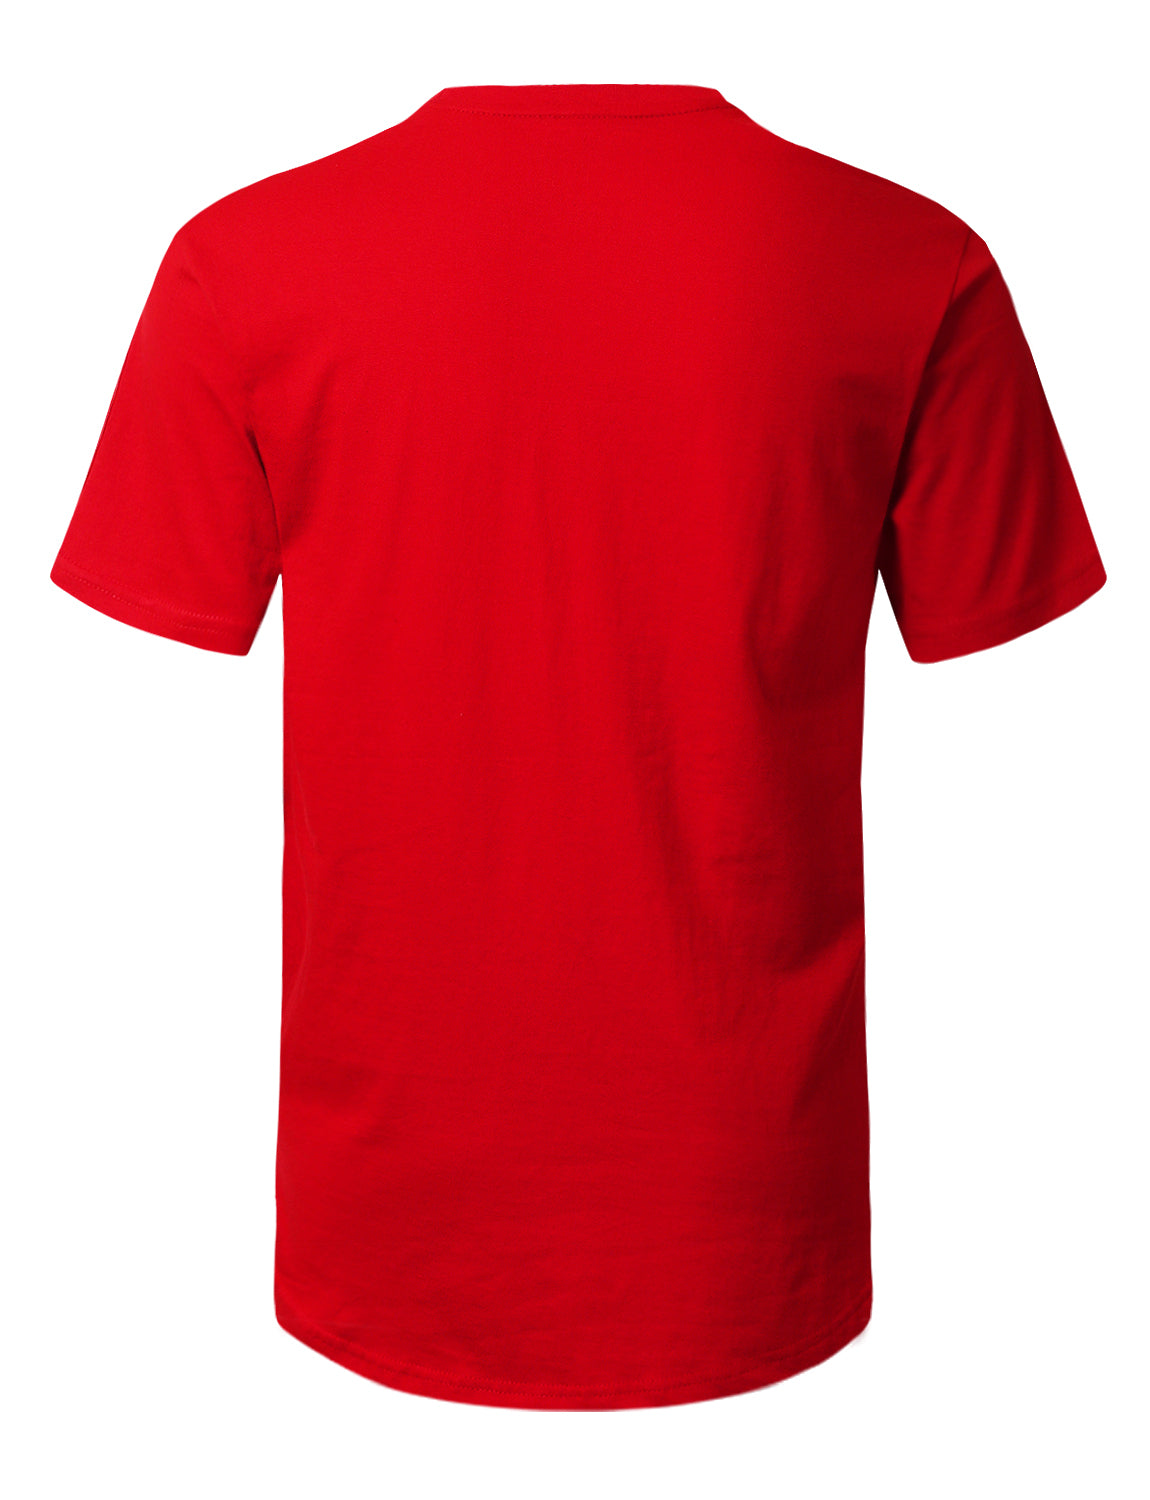 RED Allover Crack Printed Longline T-shirt - URBANCREWS